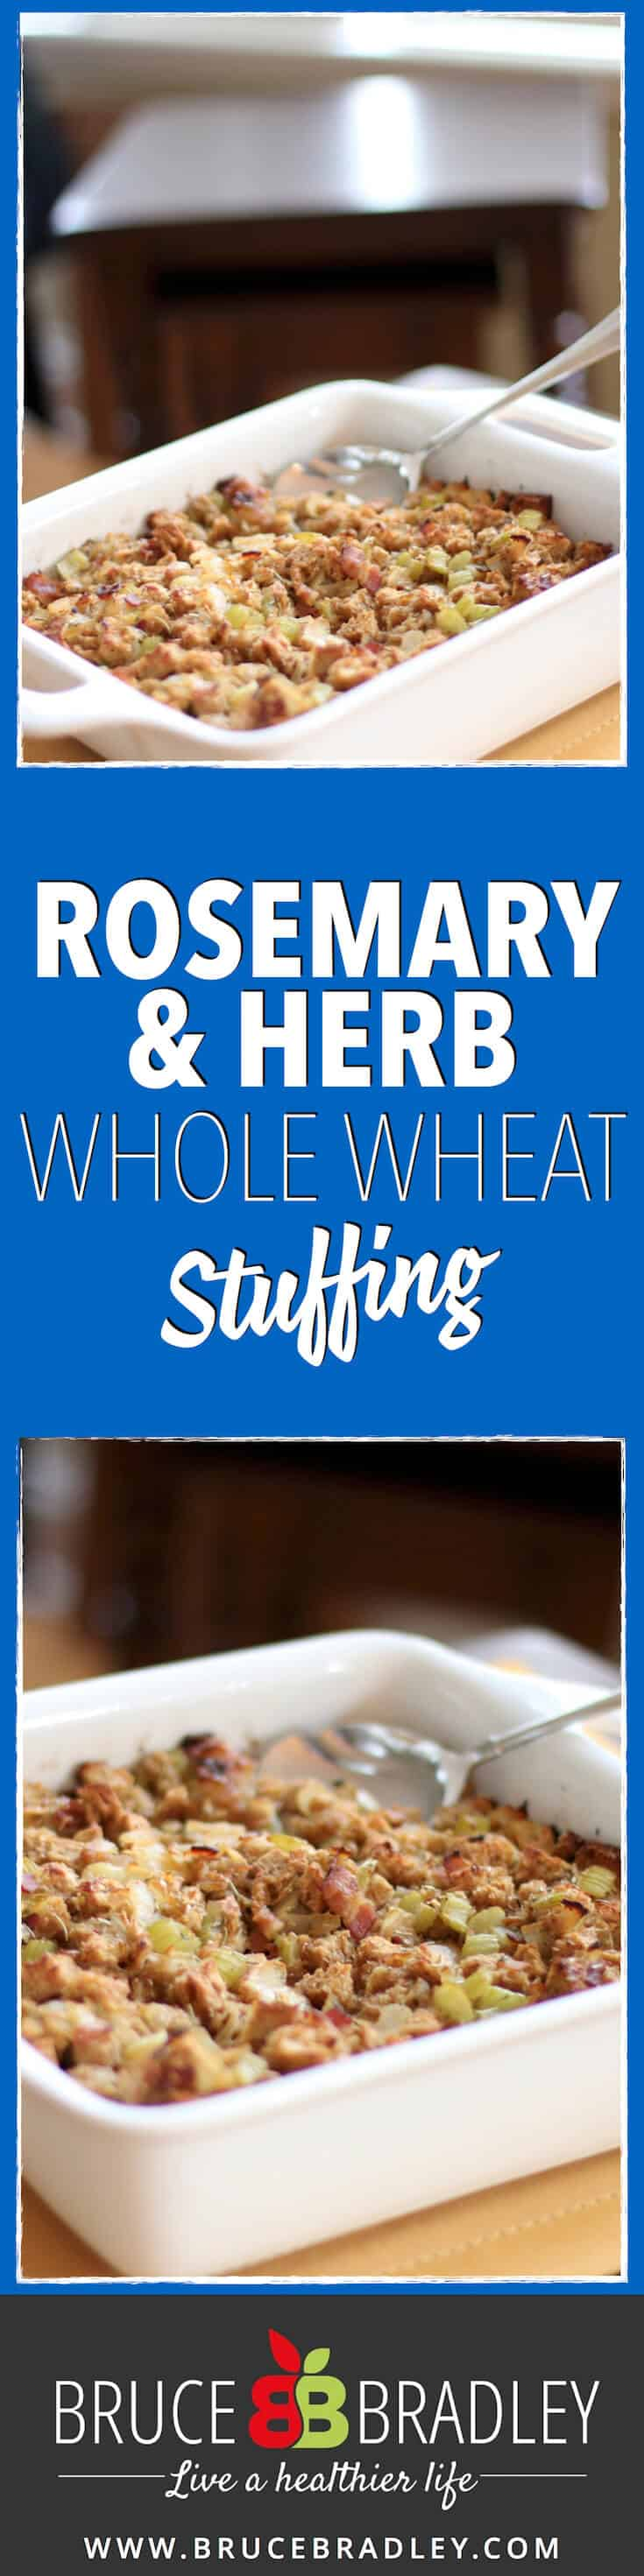 Ditch the bagged stuffing mixes and choose a REAL food version of this Thanksgiving holiday side dish ... Rosemary and Herb Whole Wheat Stuffing